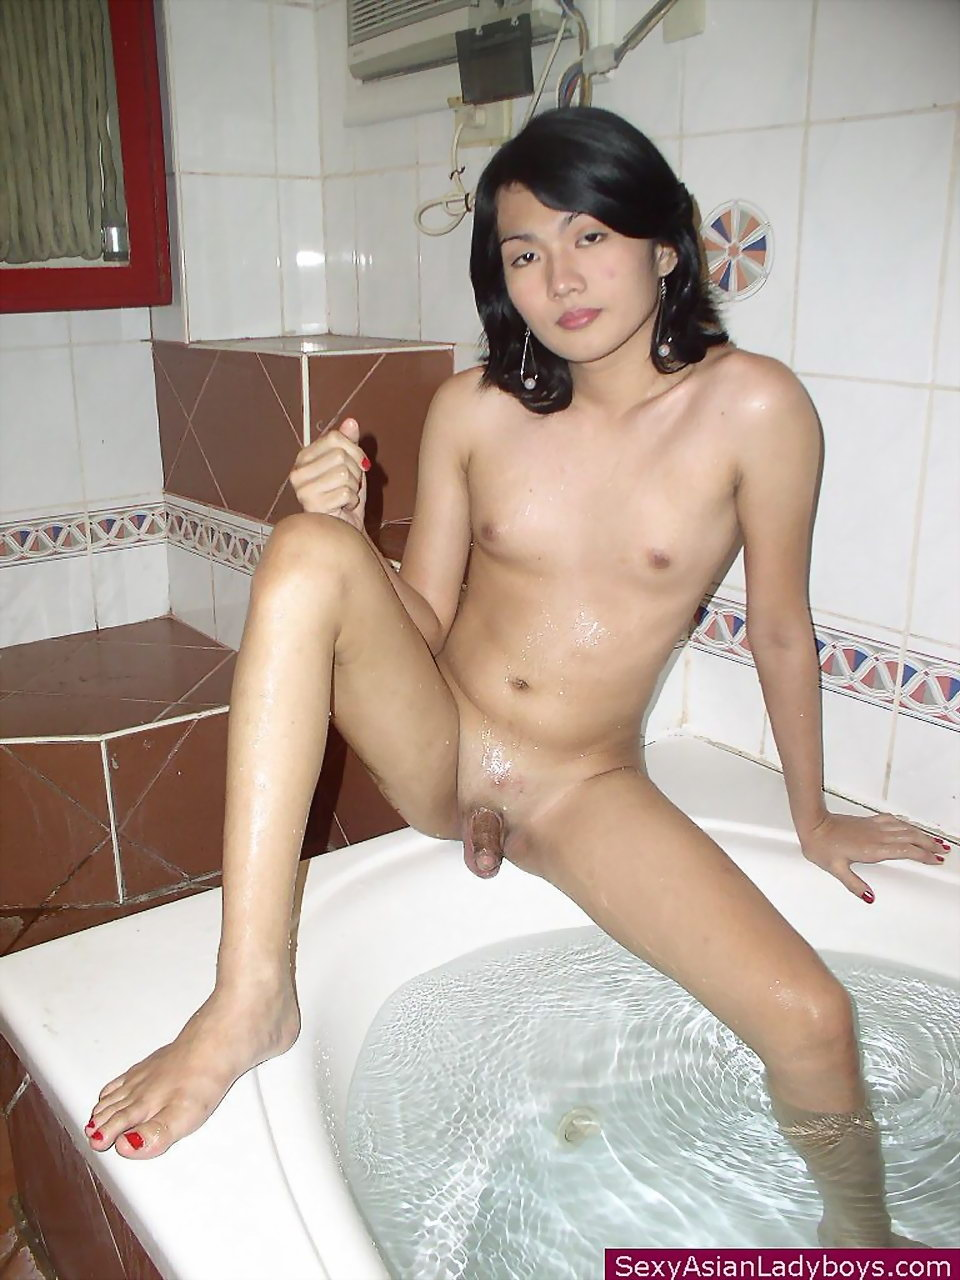 chubby-young-asian-hairless-nude